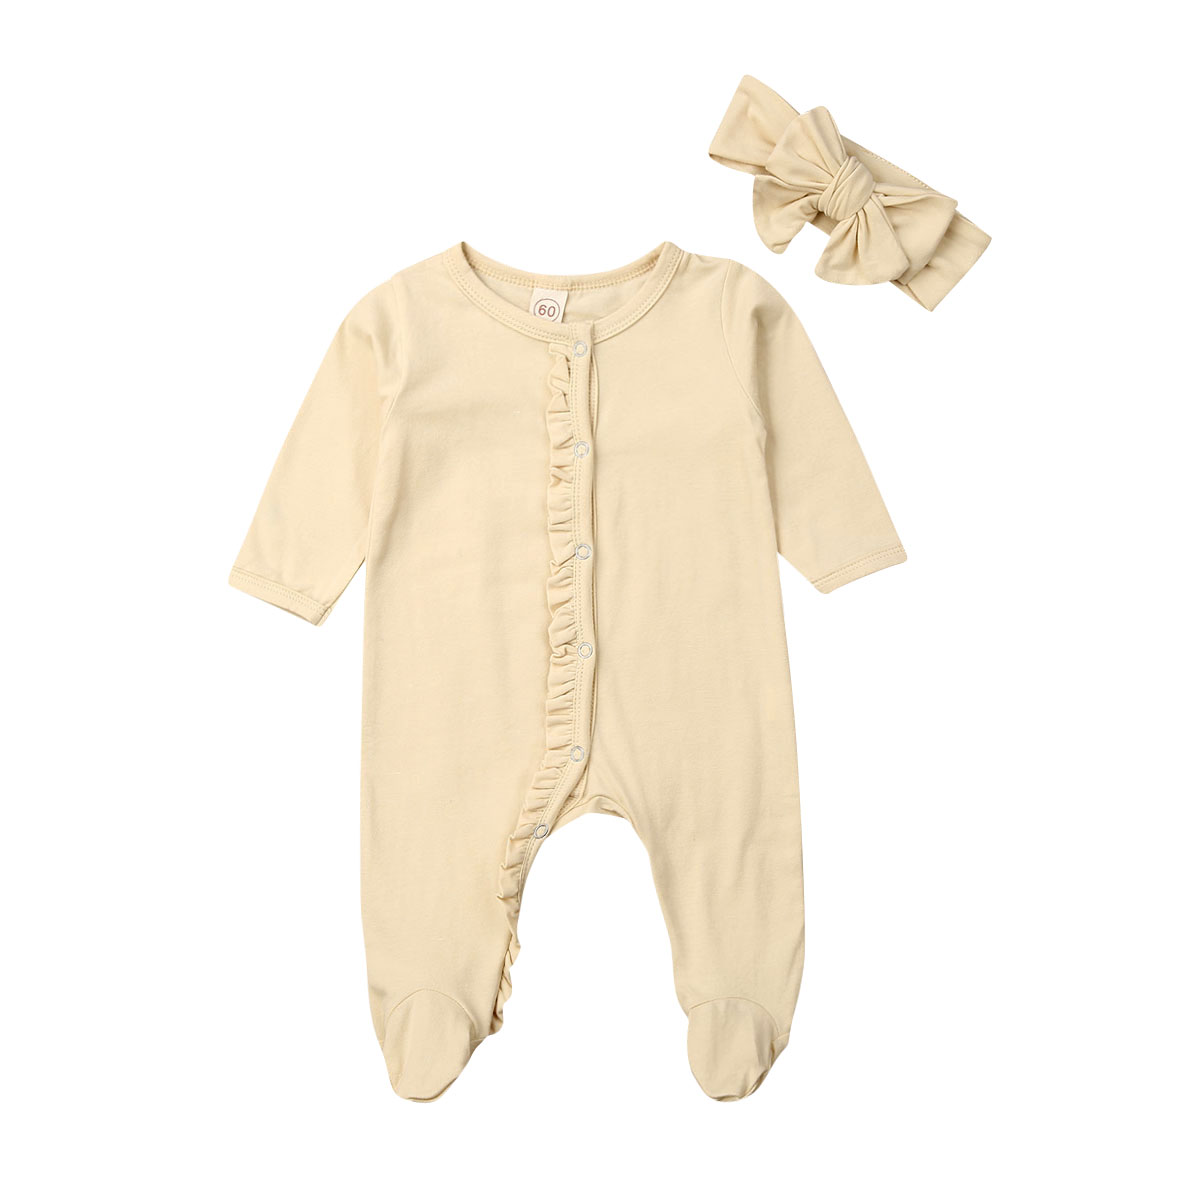 CANIS 2PCS Newborn Baby Girl Boy Cotton Long Sleeve Button Ruffles Solid Color Romper Headband Pyjamas Outfits Clothes